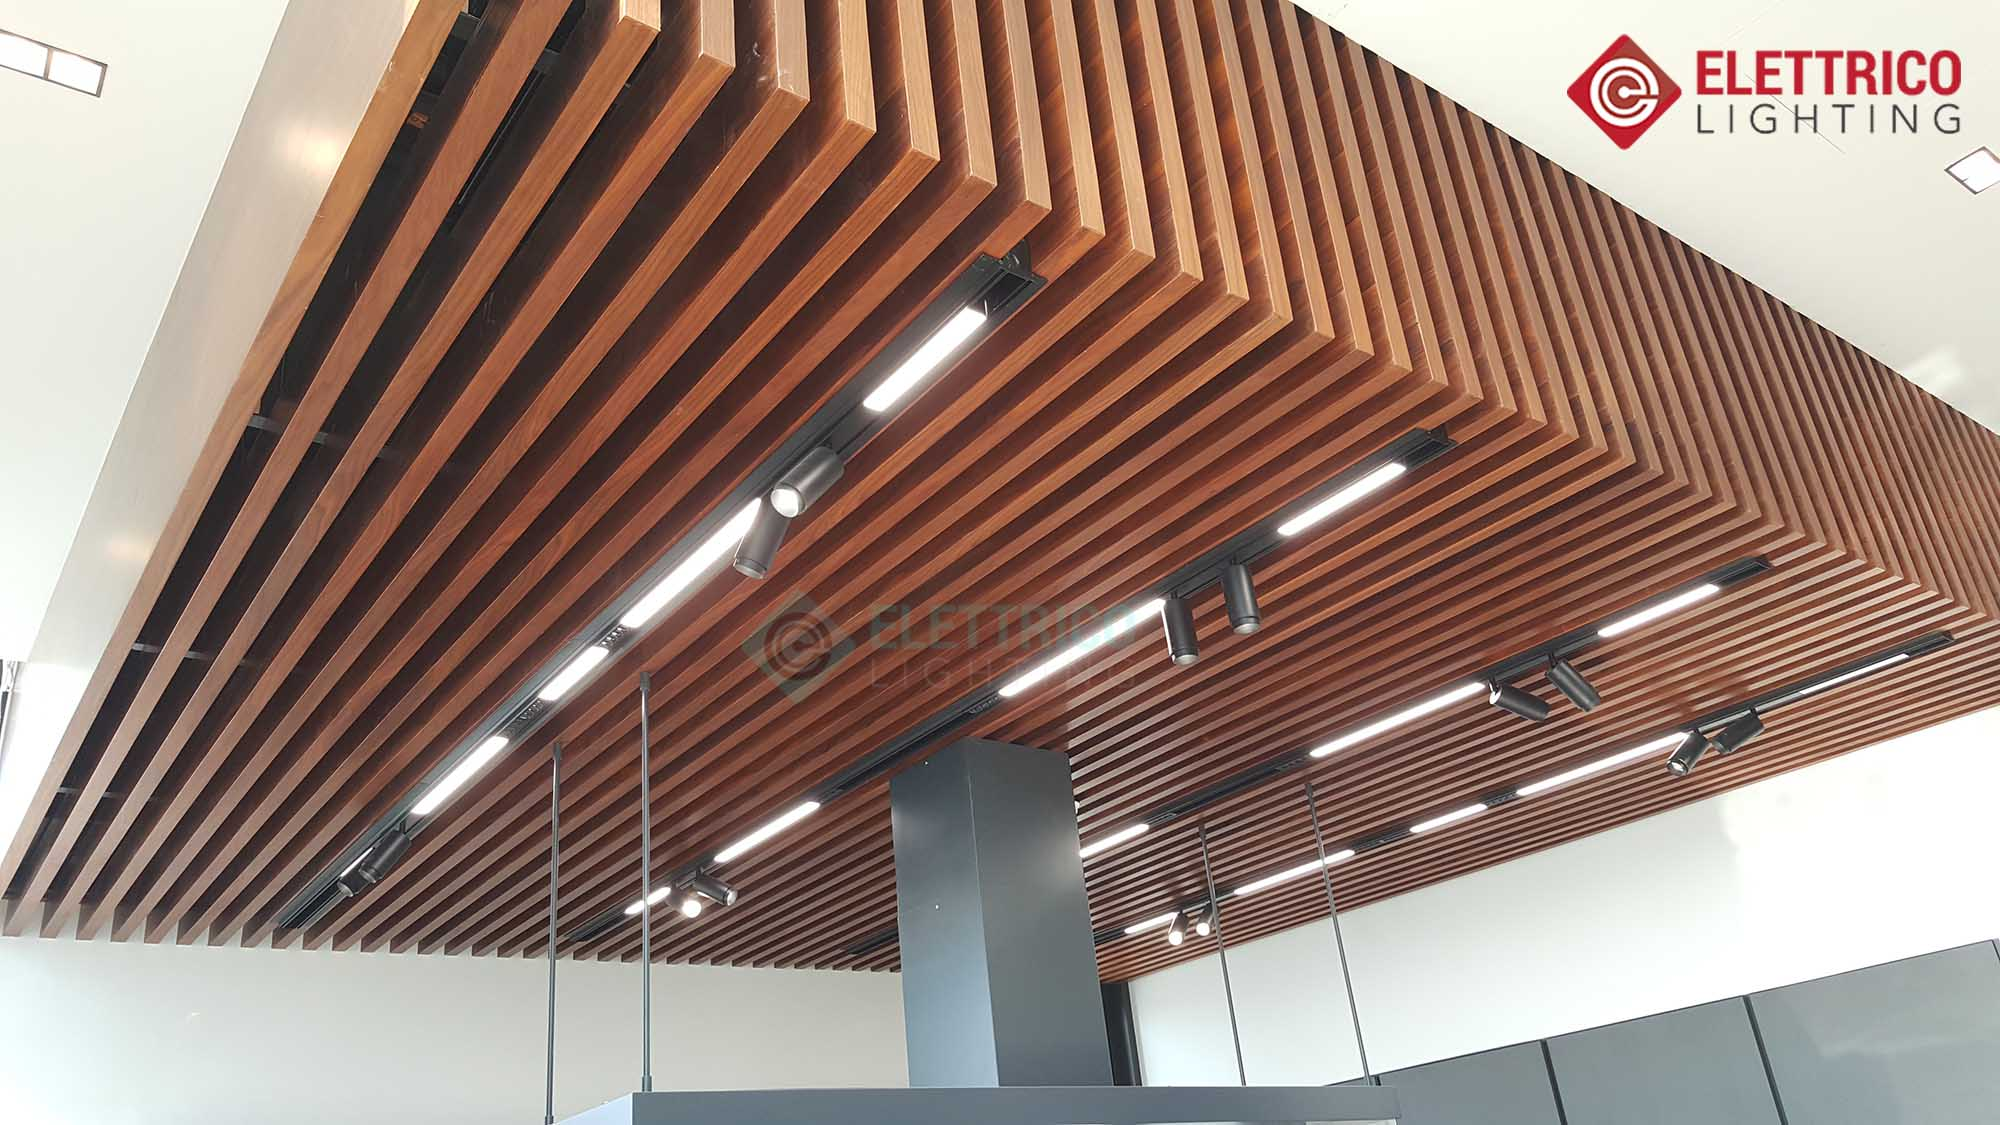 Modern lighting track system installed in wooden ceiling